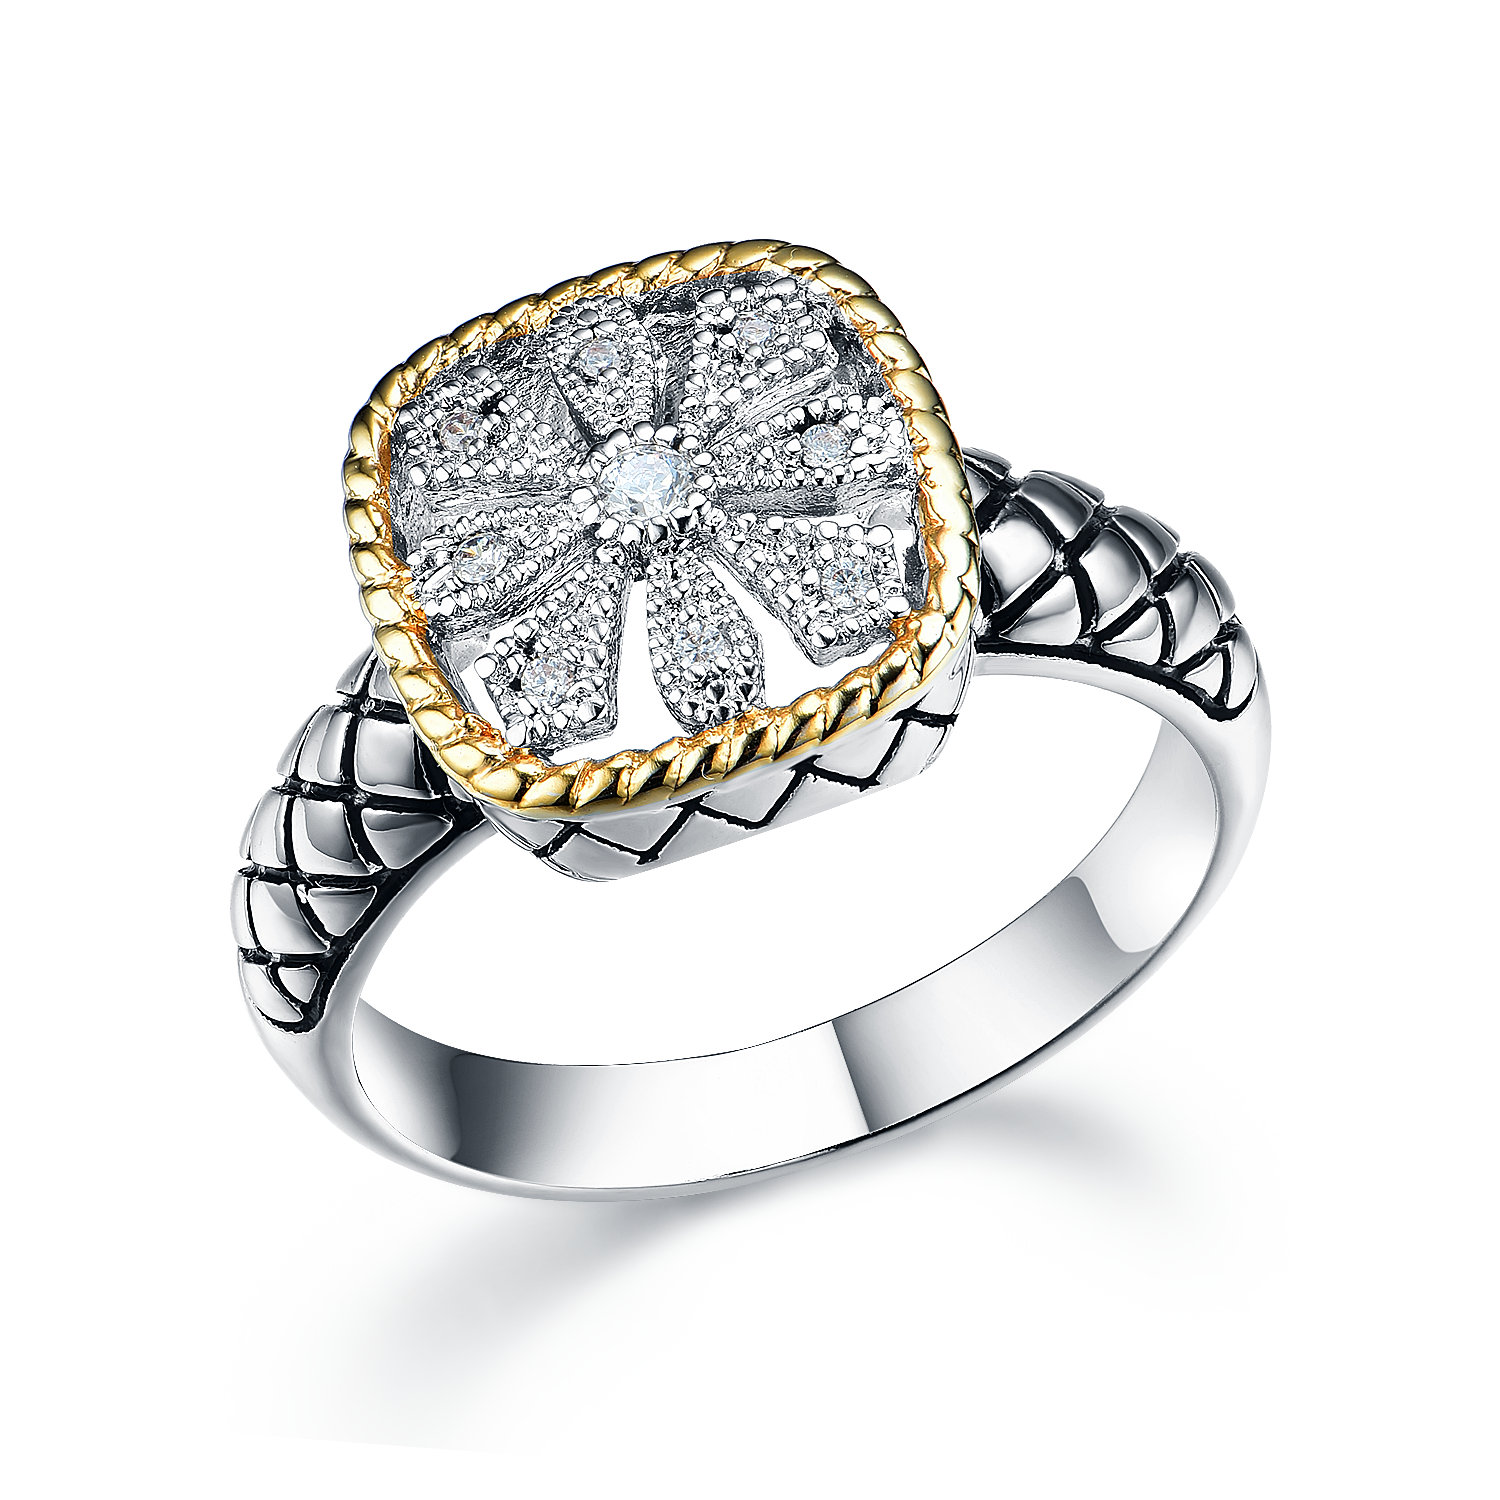 ST2767R-Designer inspired 2-tone Squre Ring with diamond shape texture in brass from China reliable jewelry supplier